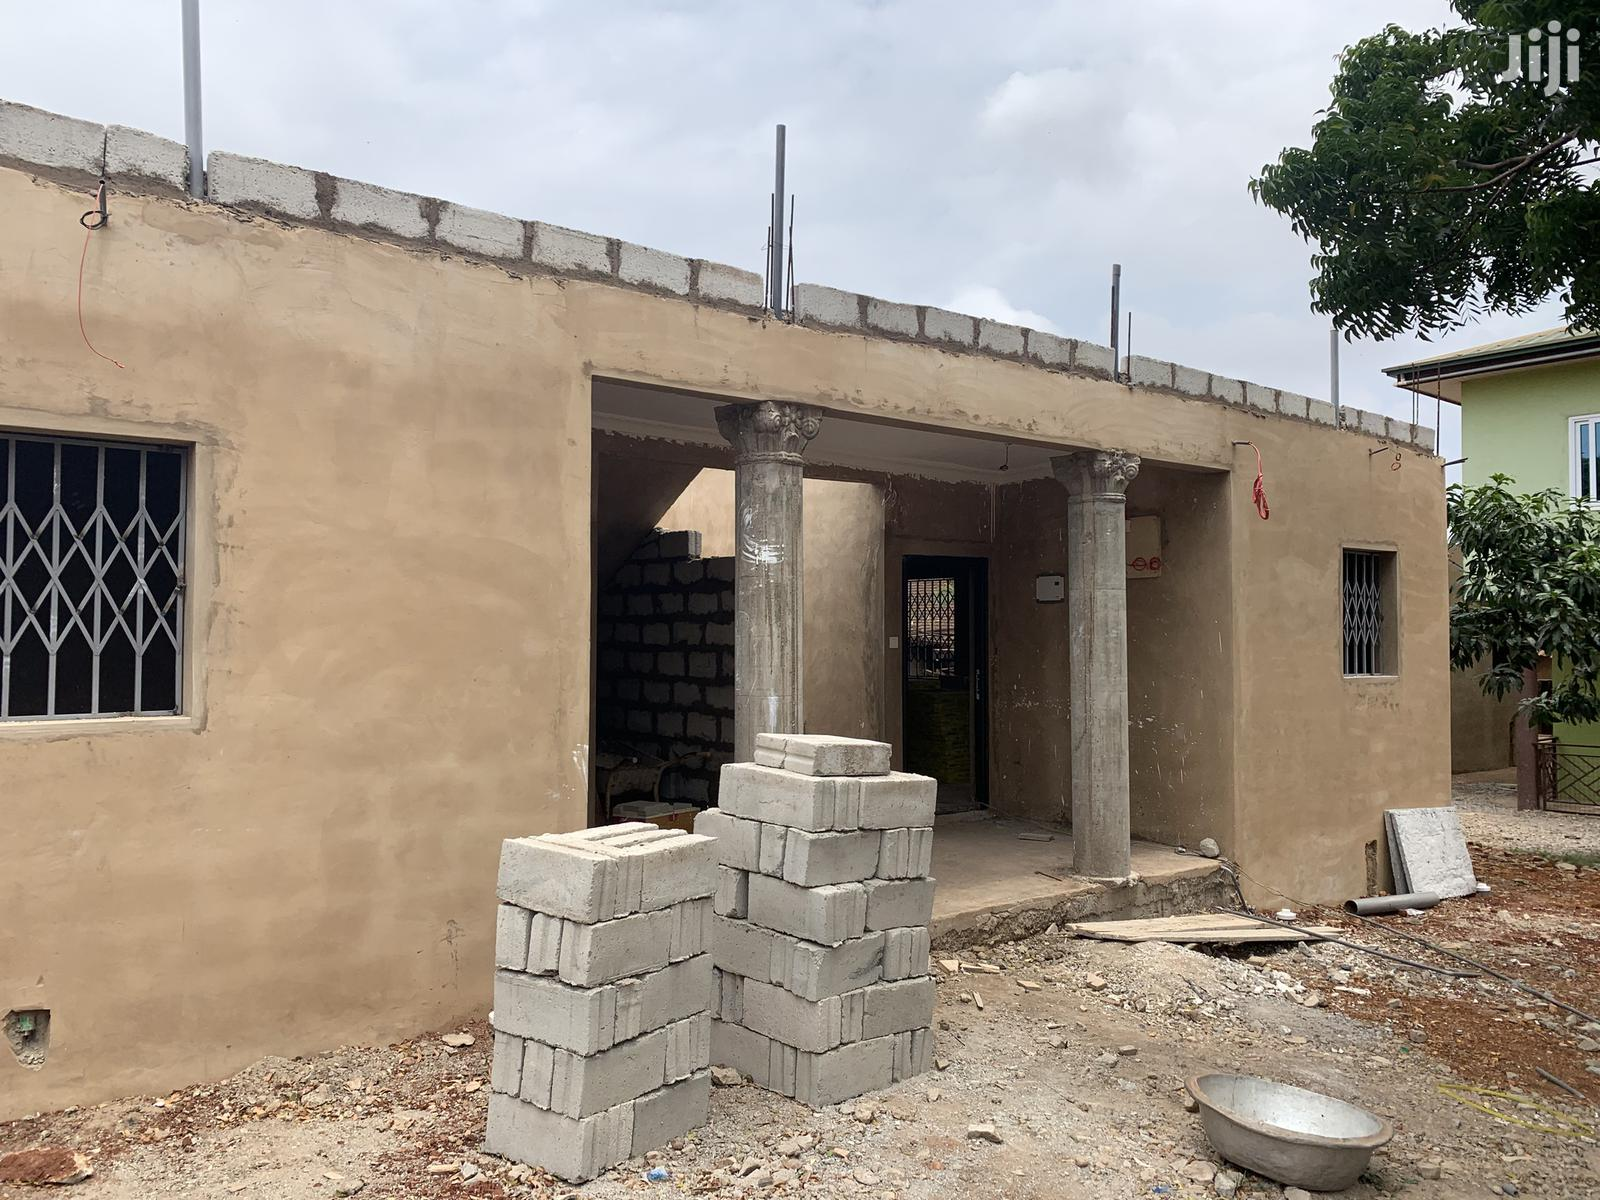 New Single Room Self Contained At Adjiriganor | Houses & Apartments For Rent for sale in East Legon, Greater Accra, Ghana